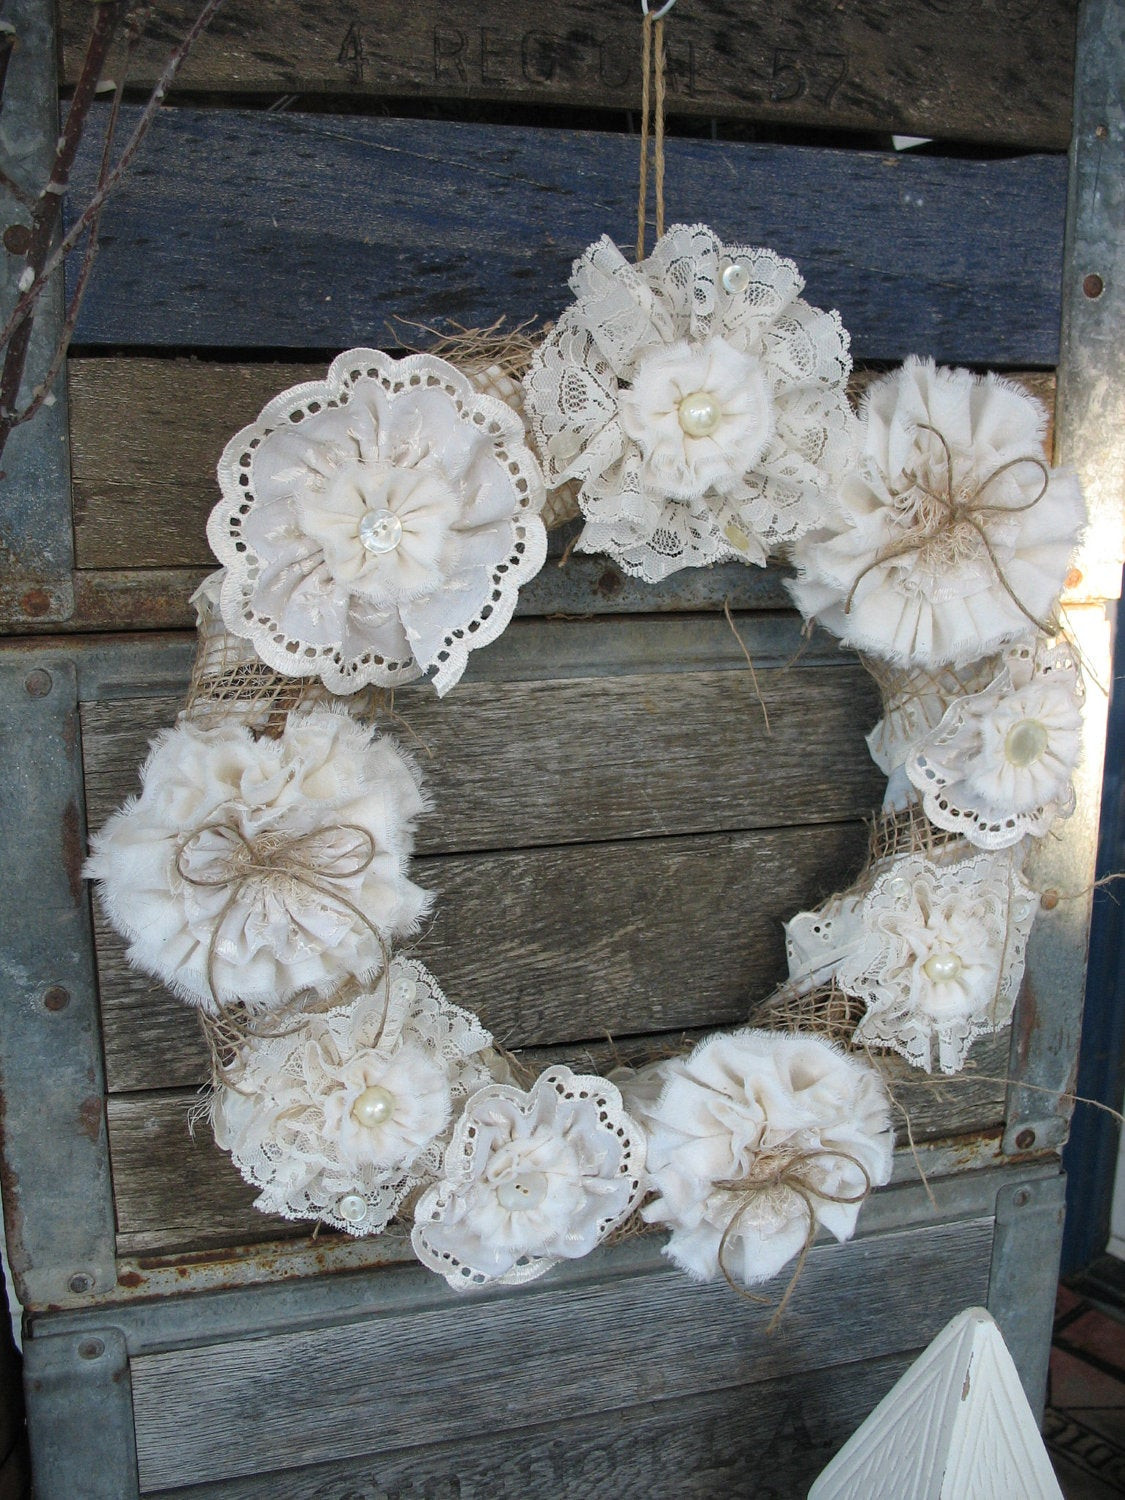 Best ideas about Shabby Chic Wreath . Save or Pin Wreath Burlap Wreath Shabby Chic Wreath Lace Flower Now.